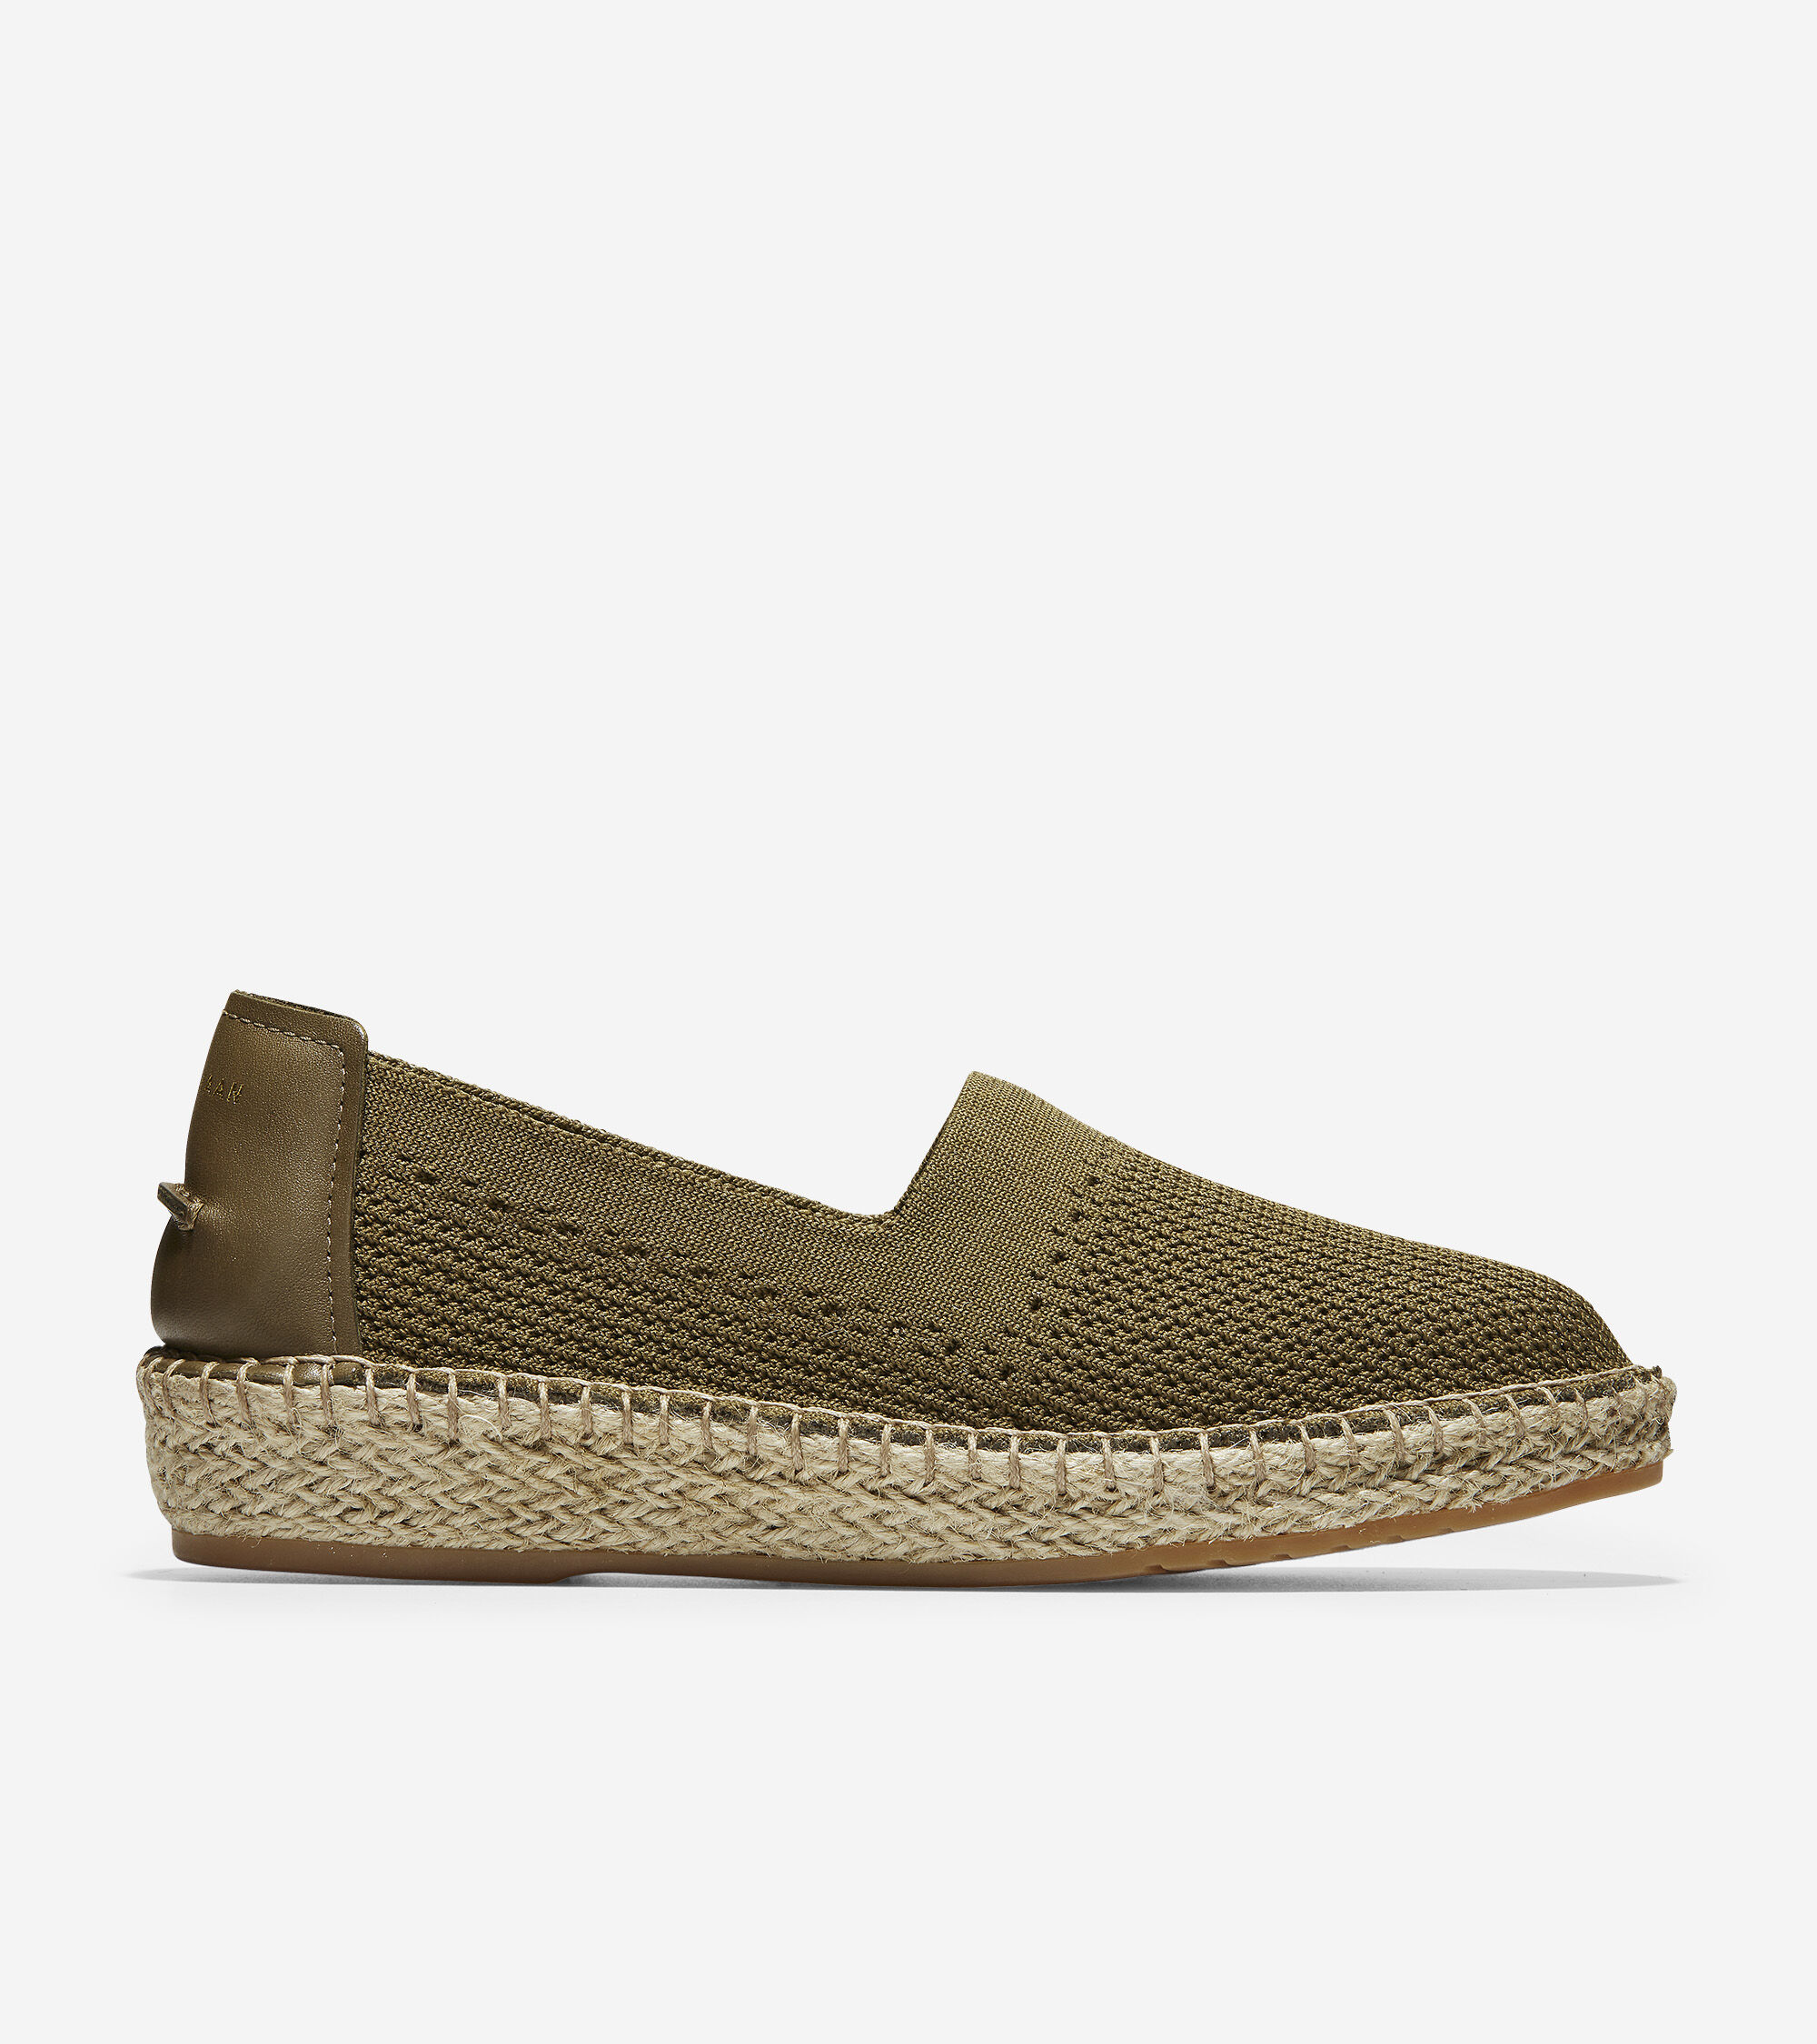 Cole Haan Women's Cloudfeel Espadrille with Stitchlite